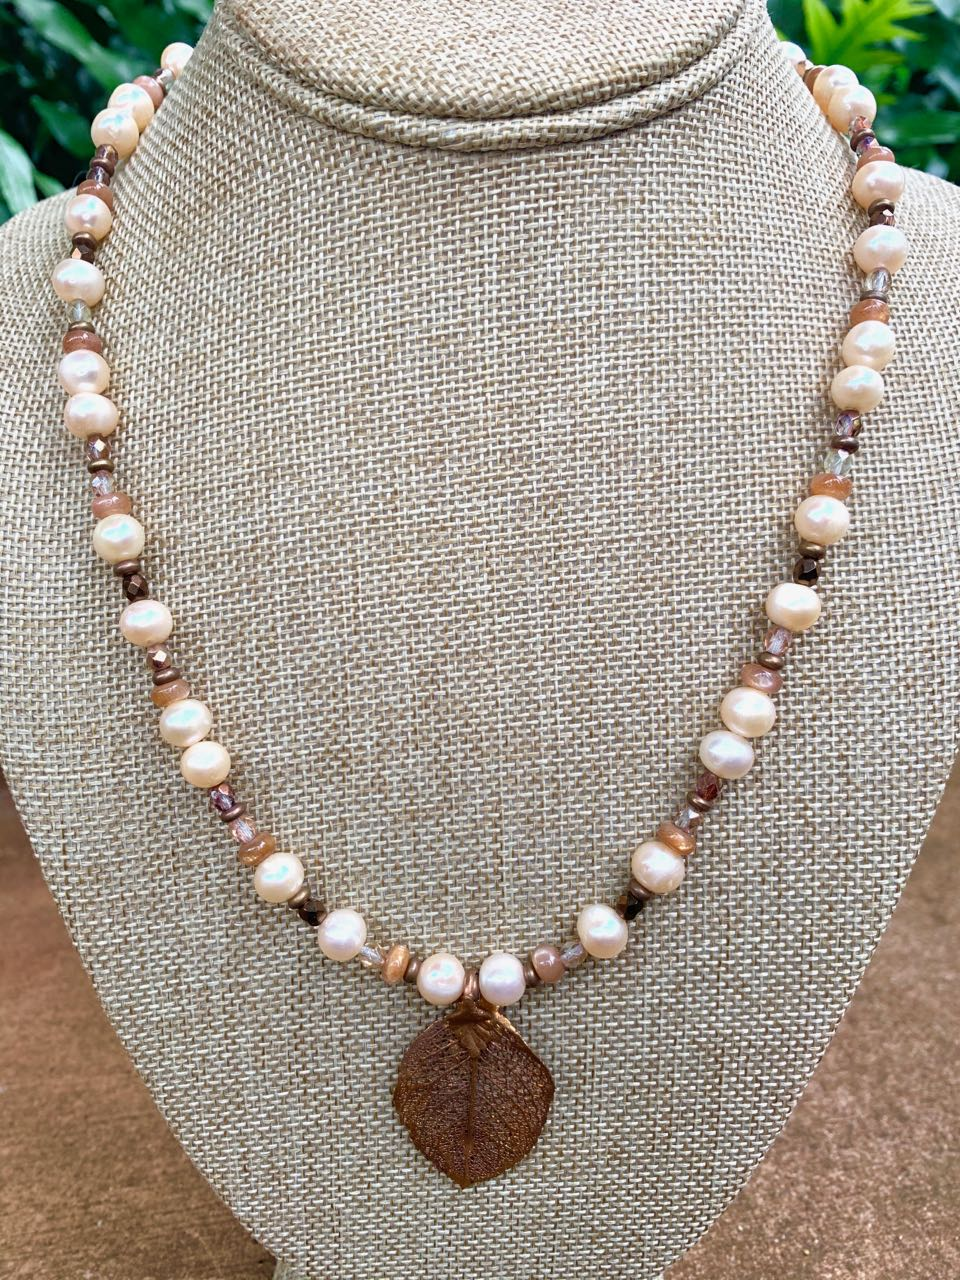 Liesel Lund: Pearl, Sunstone, Copper, Crystal & Gold Findings Necklace